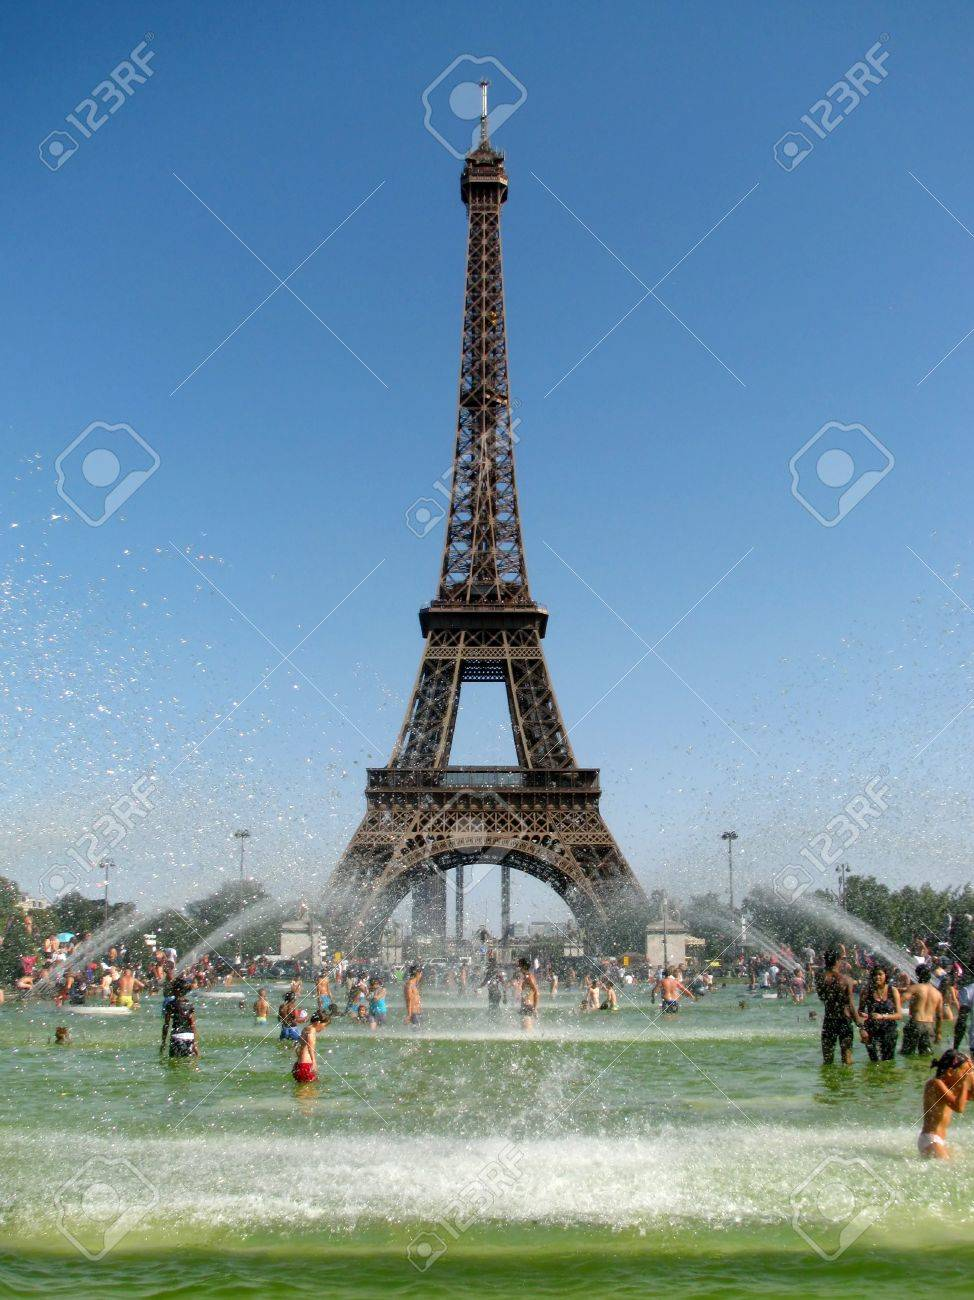 Record-breaking heat wave in Paris that make people cool in the fountain in front of the majestic Eiffel Tower on August 18, 2012 in Paris, France. Stock Photo - 15078836